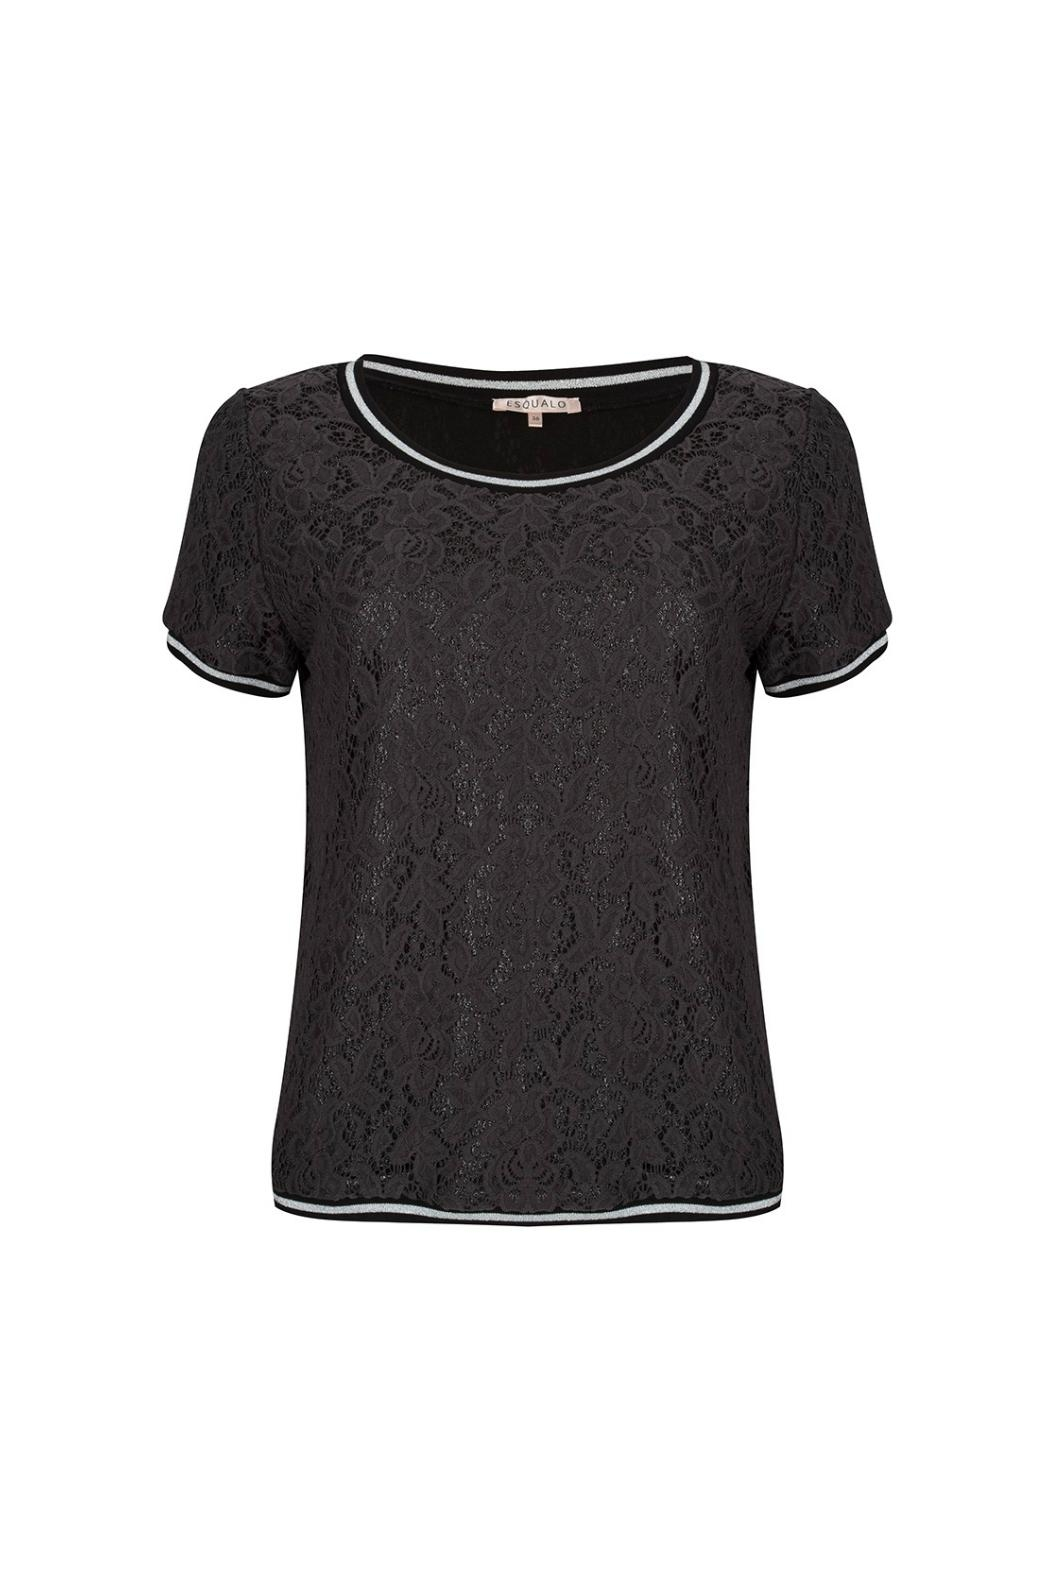 EsQualo Lace Metallic Top - Front Cropped Image